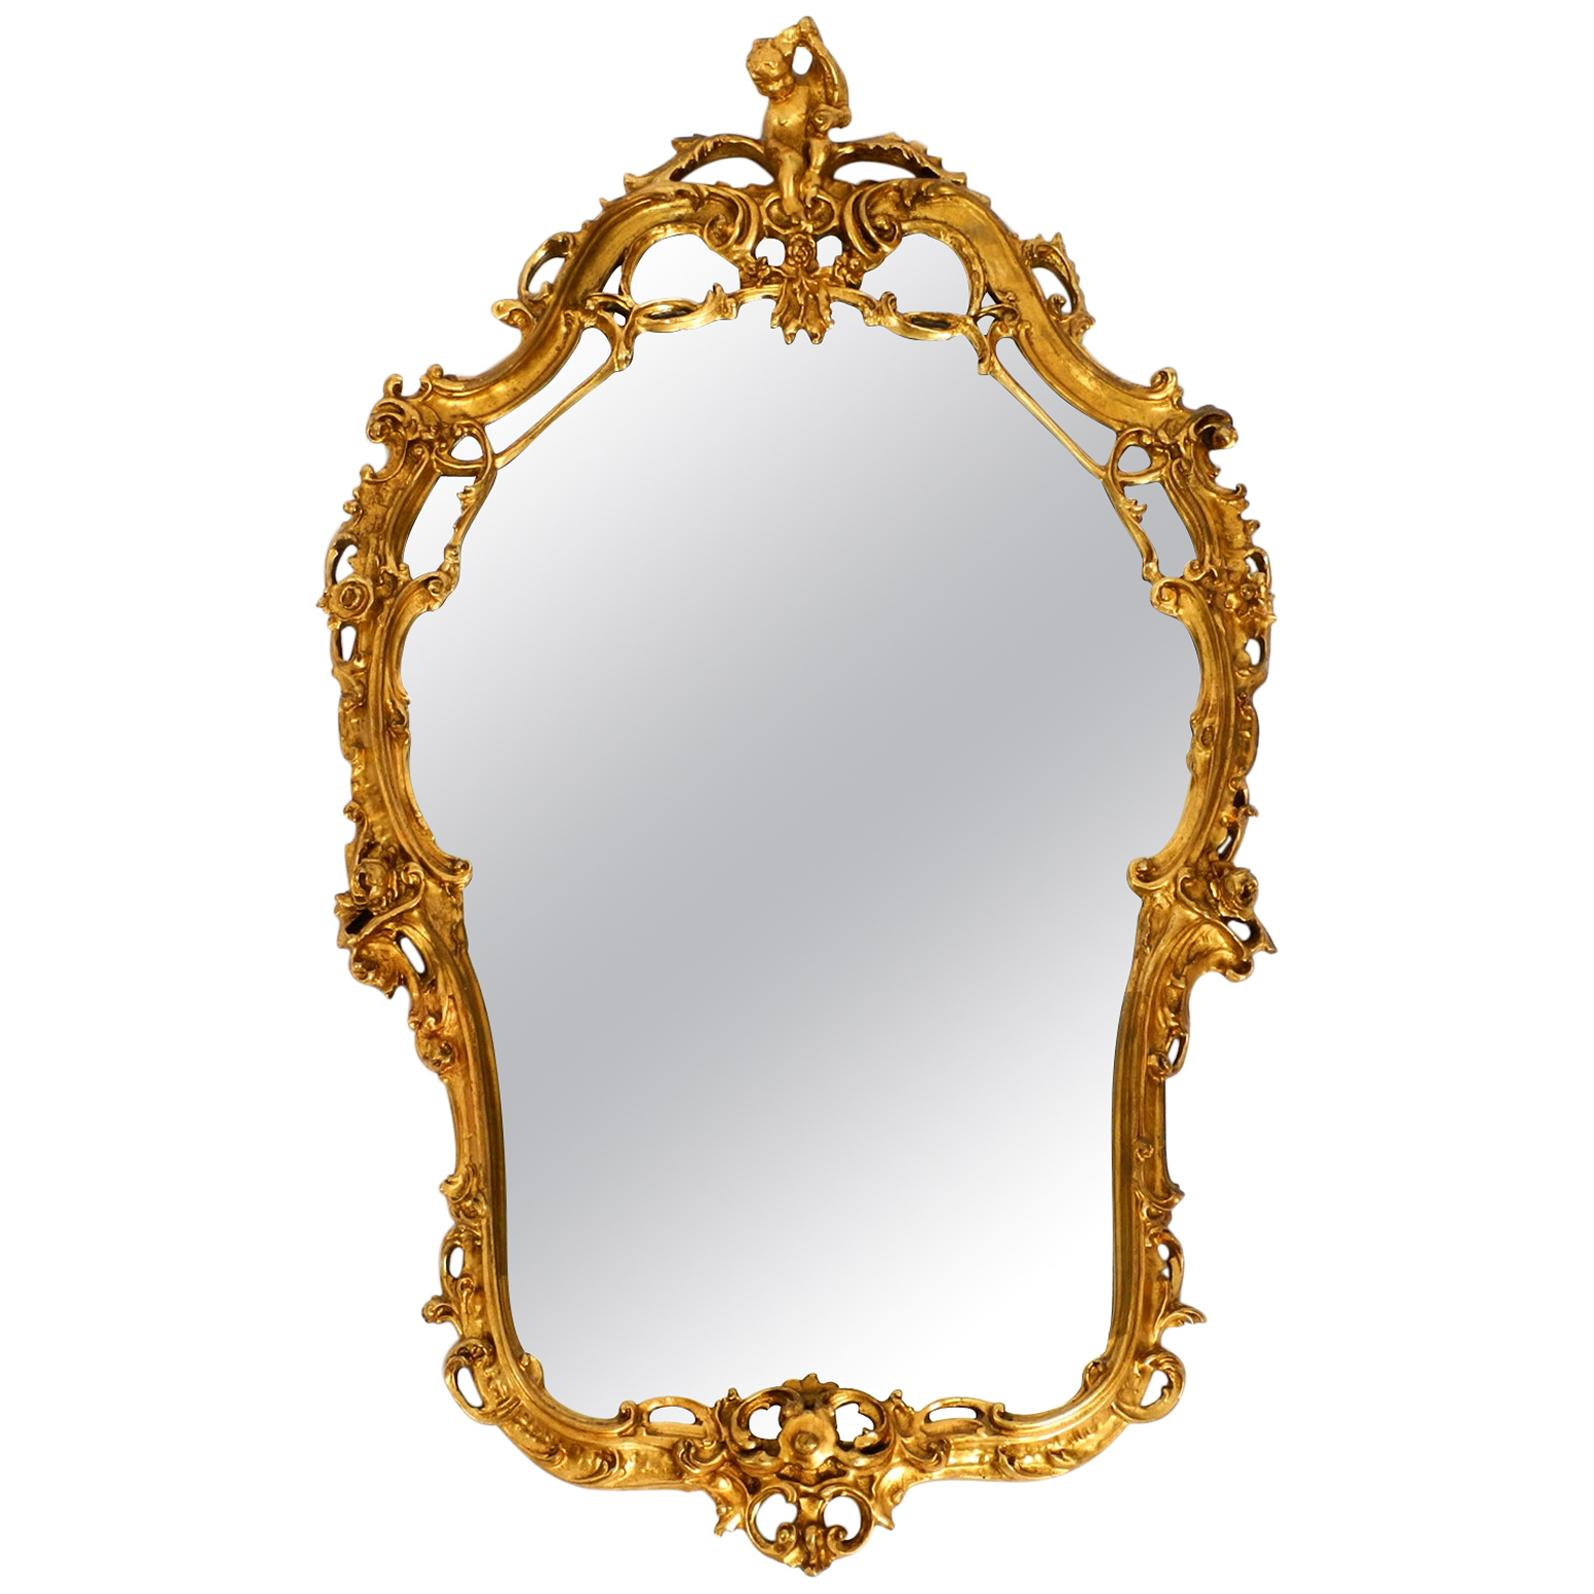 Wonderful Huge Italian Antique Wall Mirror from the 1950s